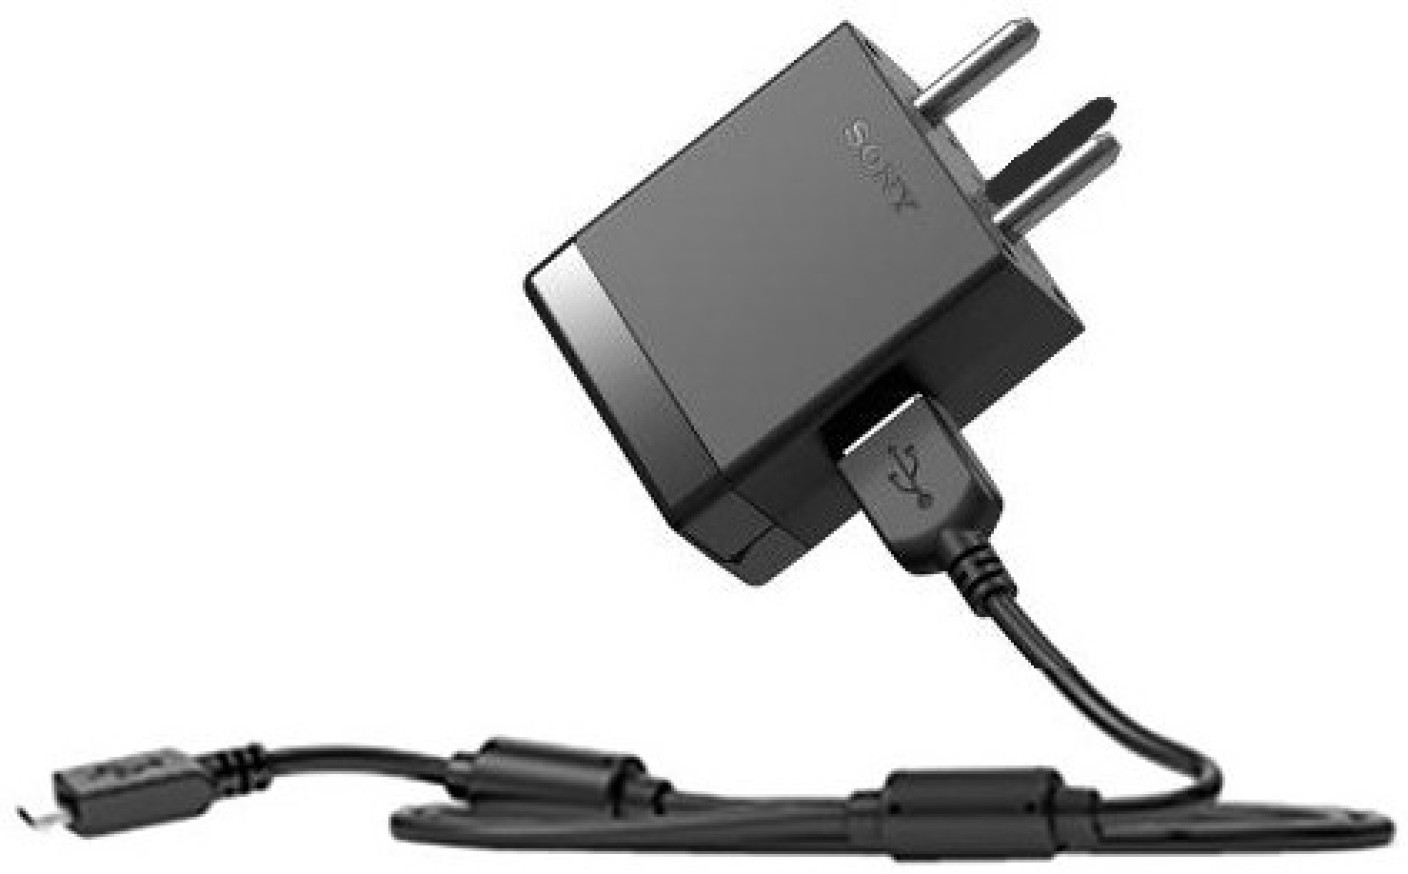 Sony EP881 Mobile Charger